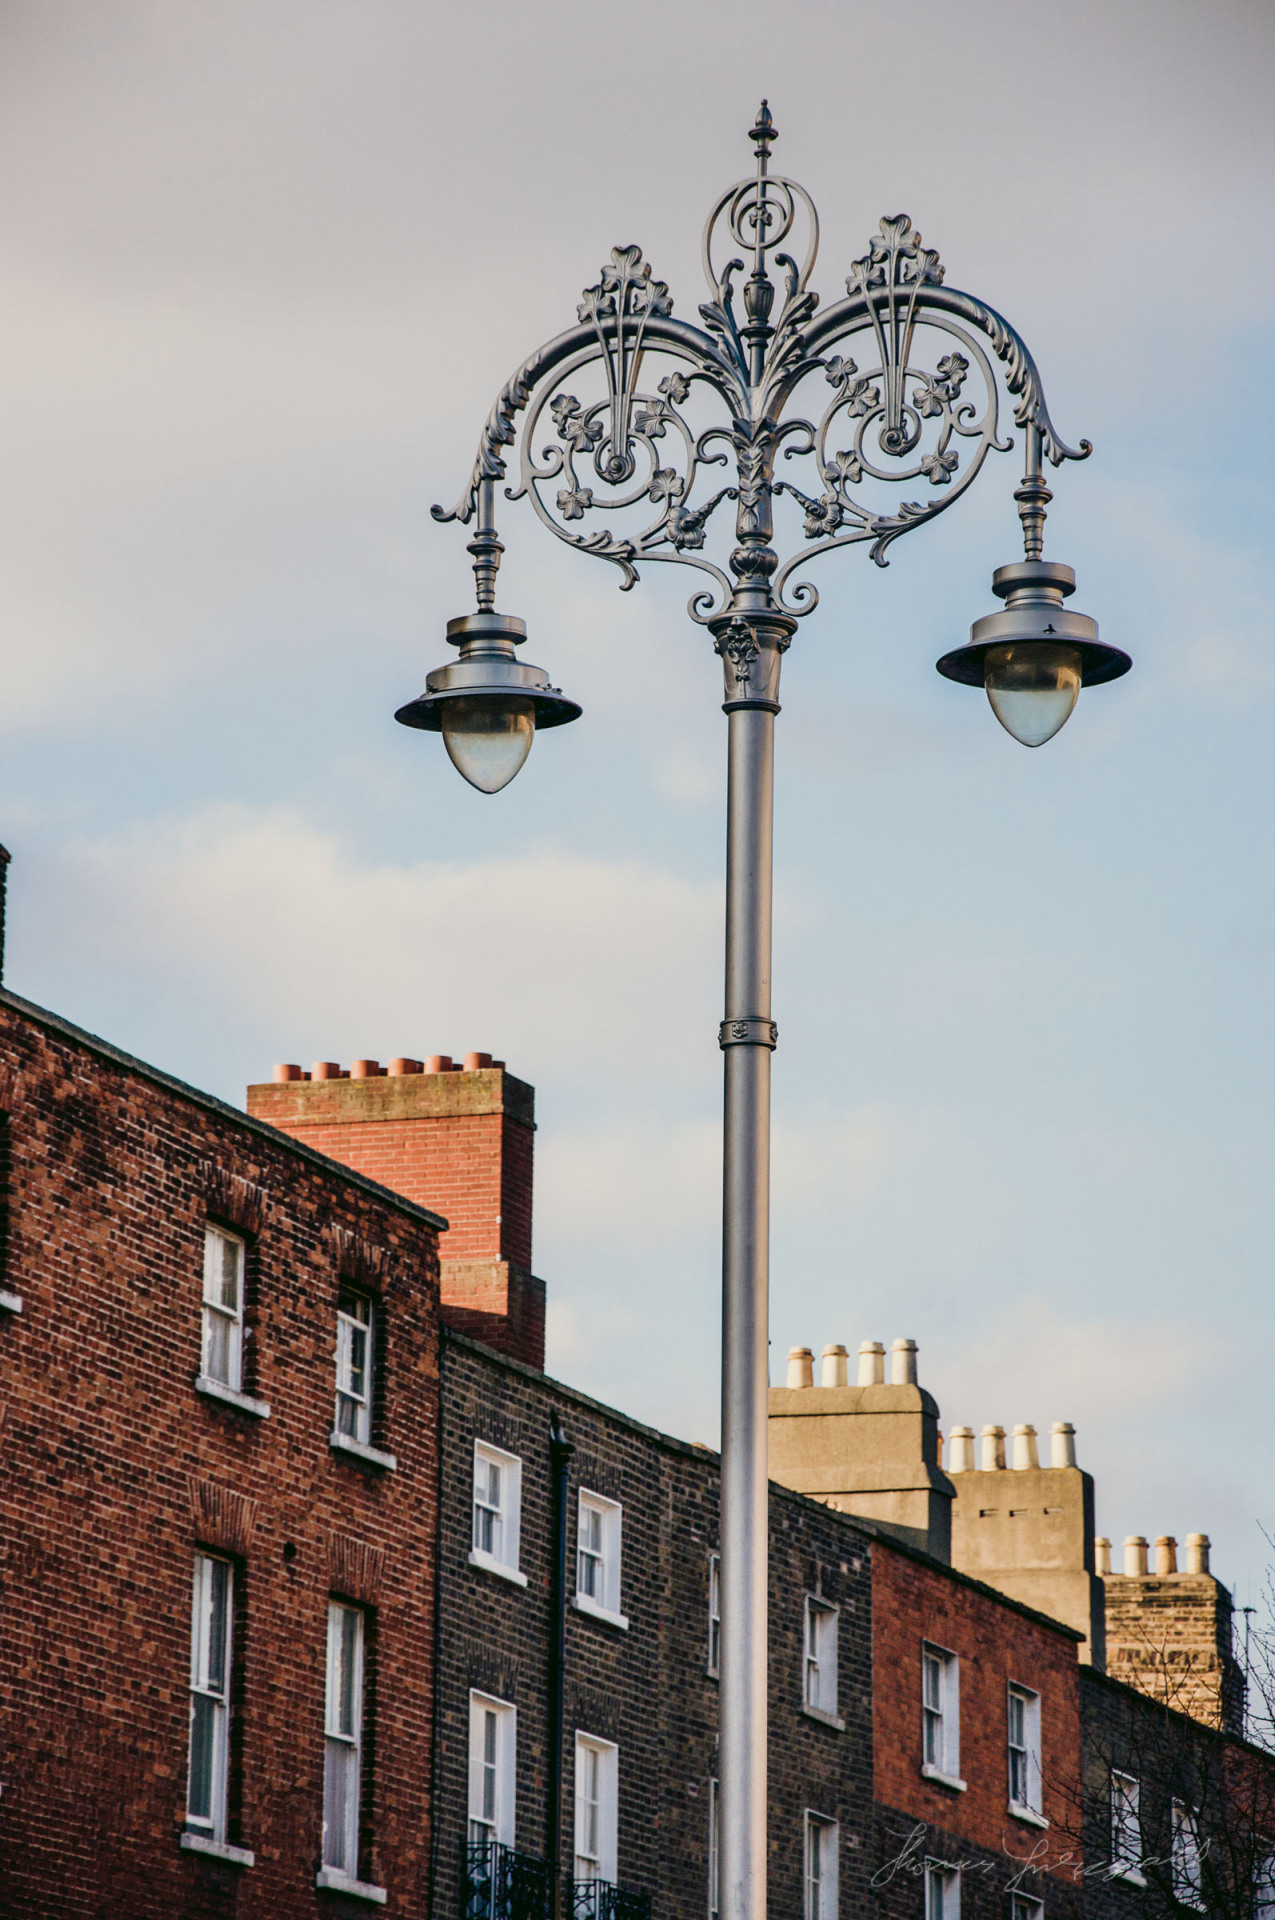 The lamp post and the Georgian buildings